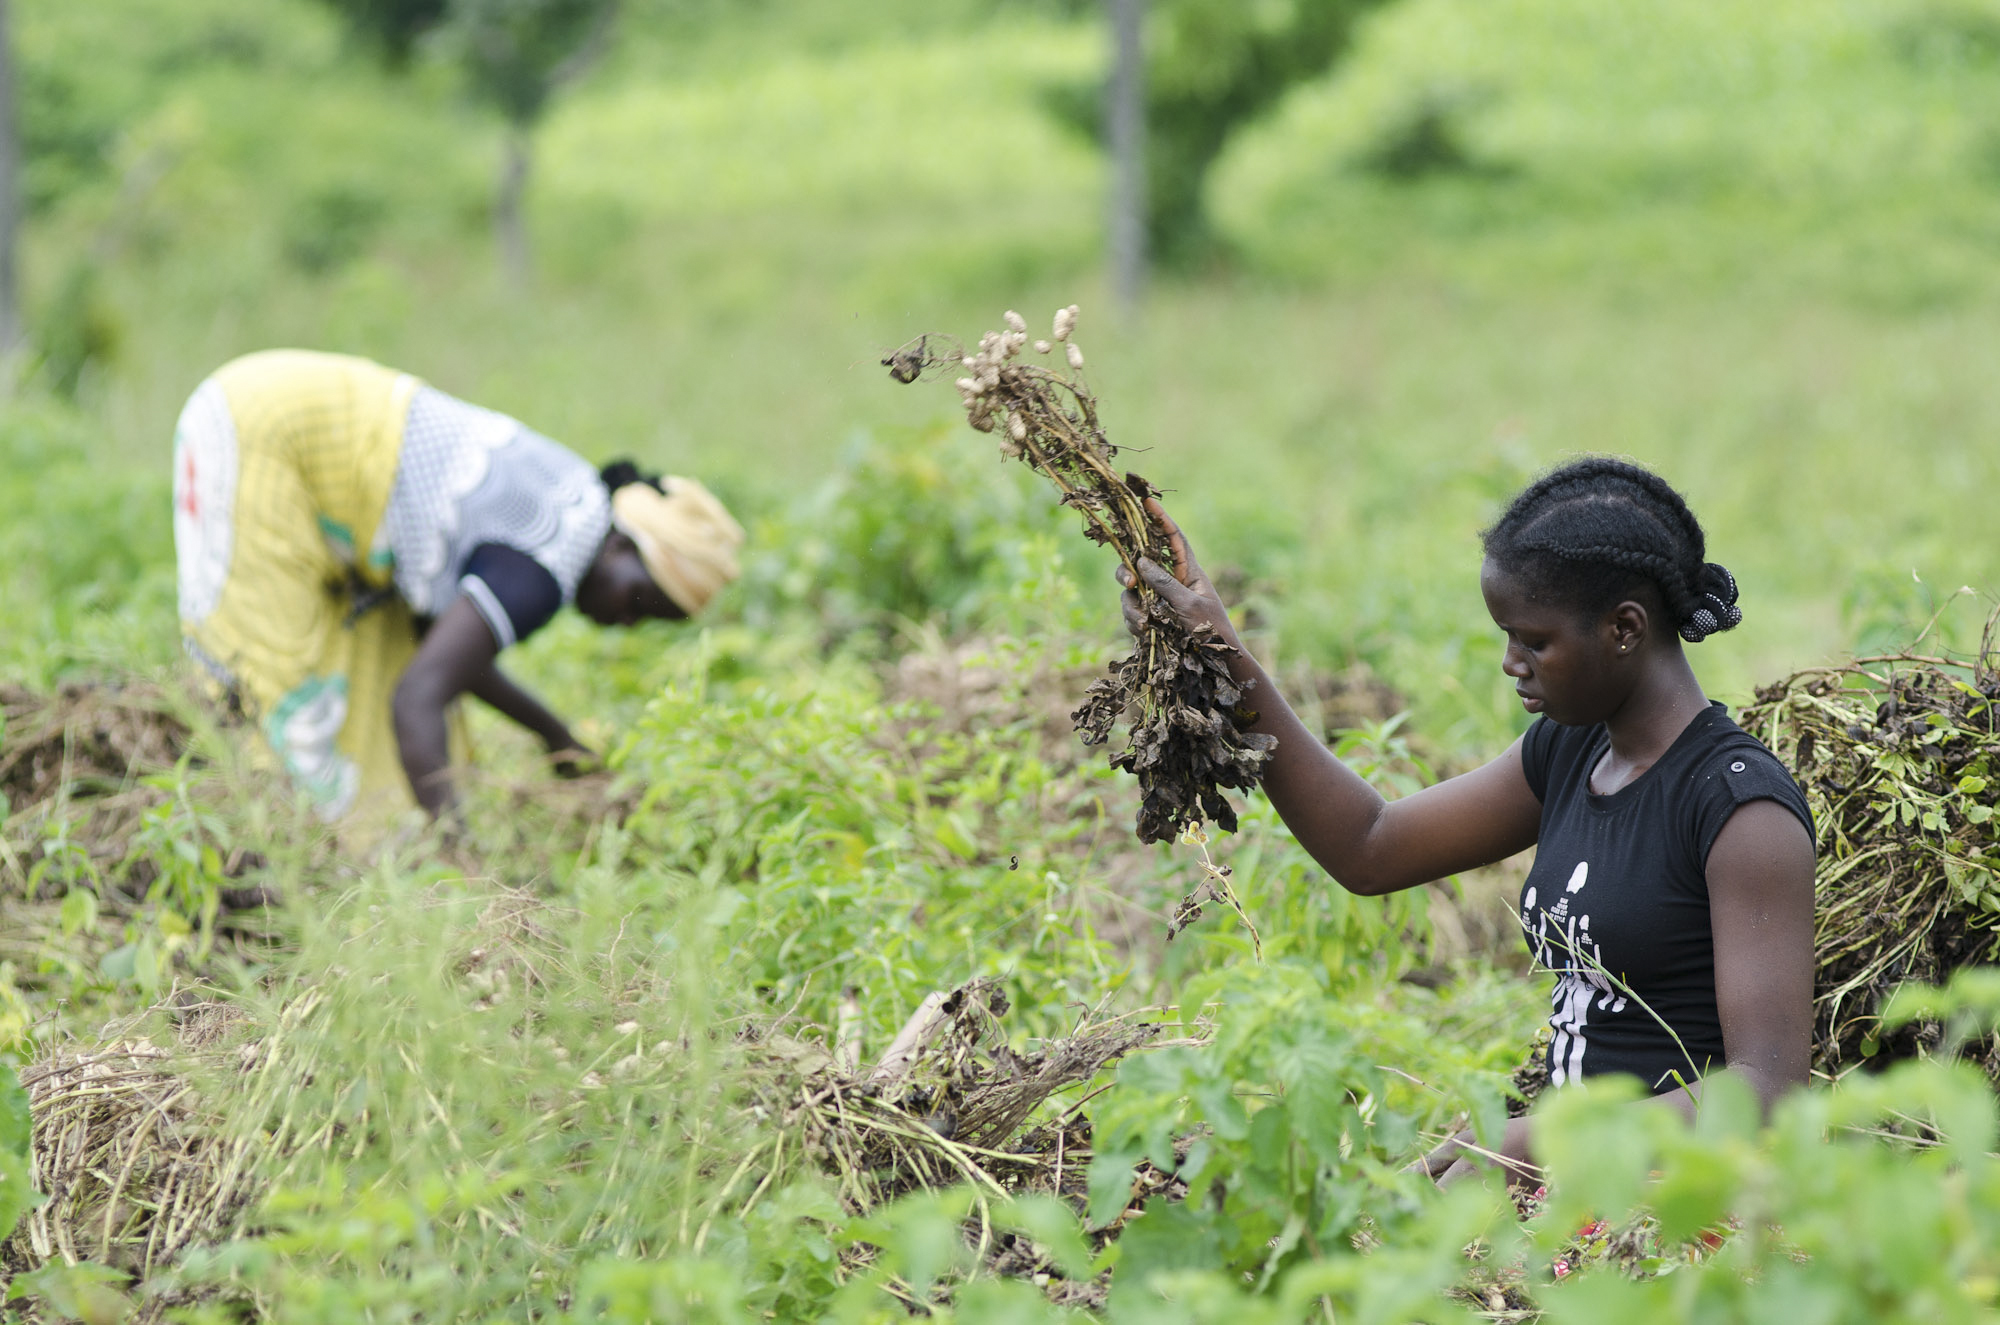 Pundit Analyses Reasons Why Young People Shun Agriculture